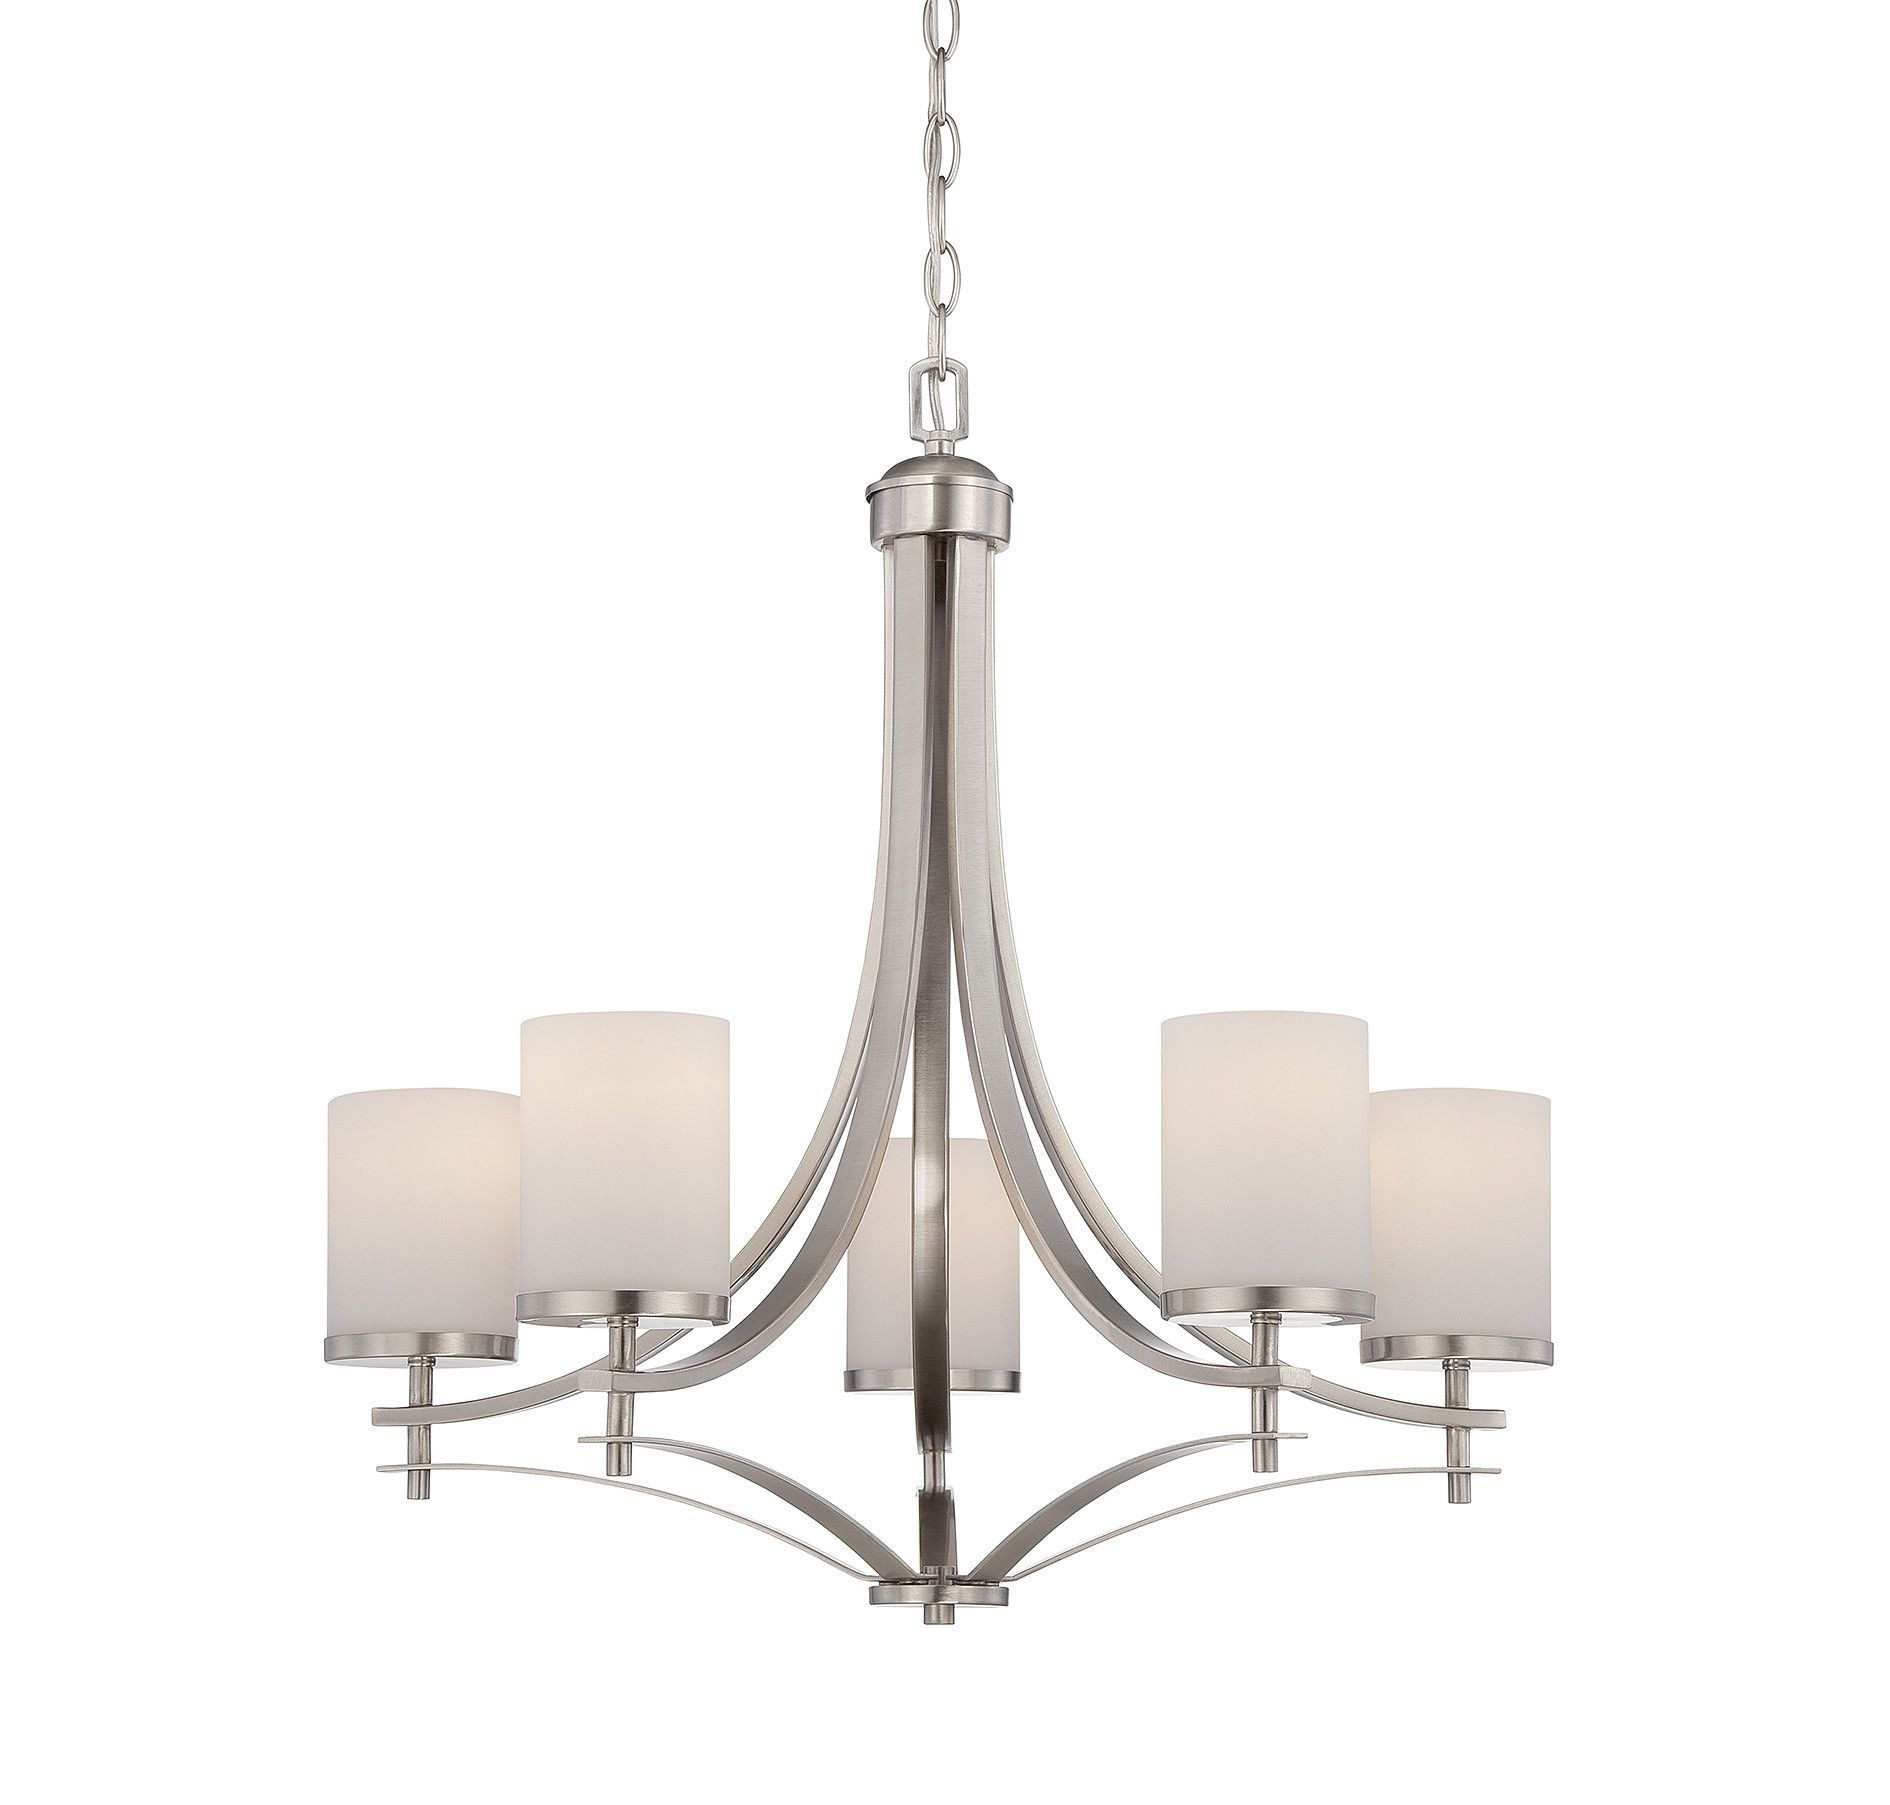 Outstanding Transitional Dining Room Suitable For Any Home: Agnes 5-Light Shaded Chandelier